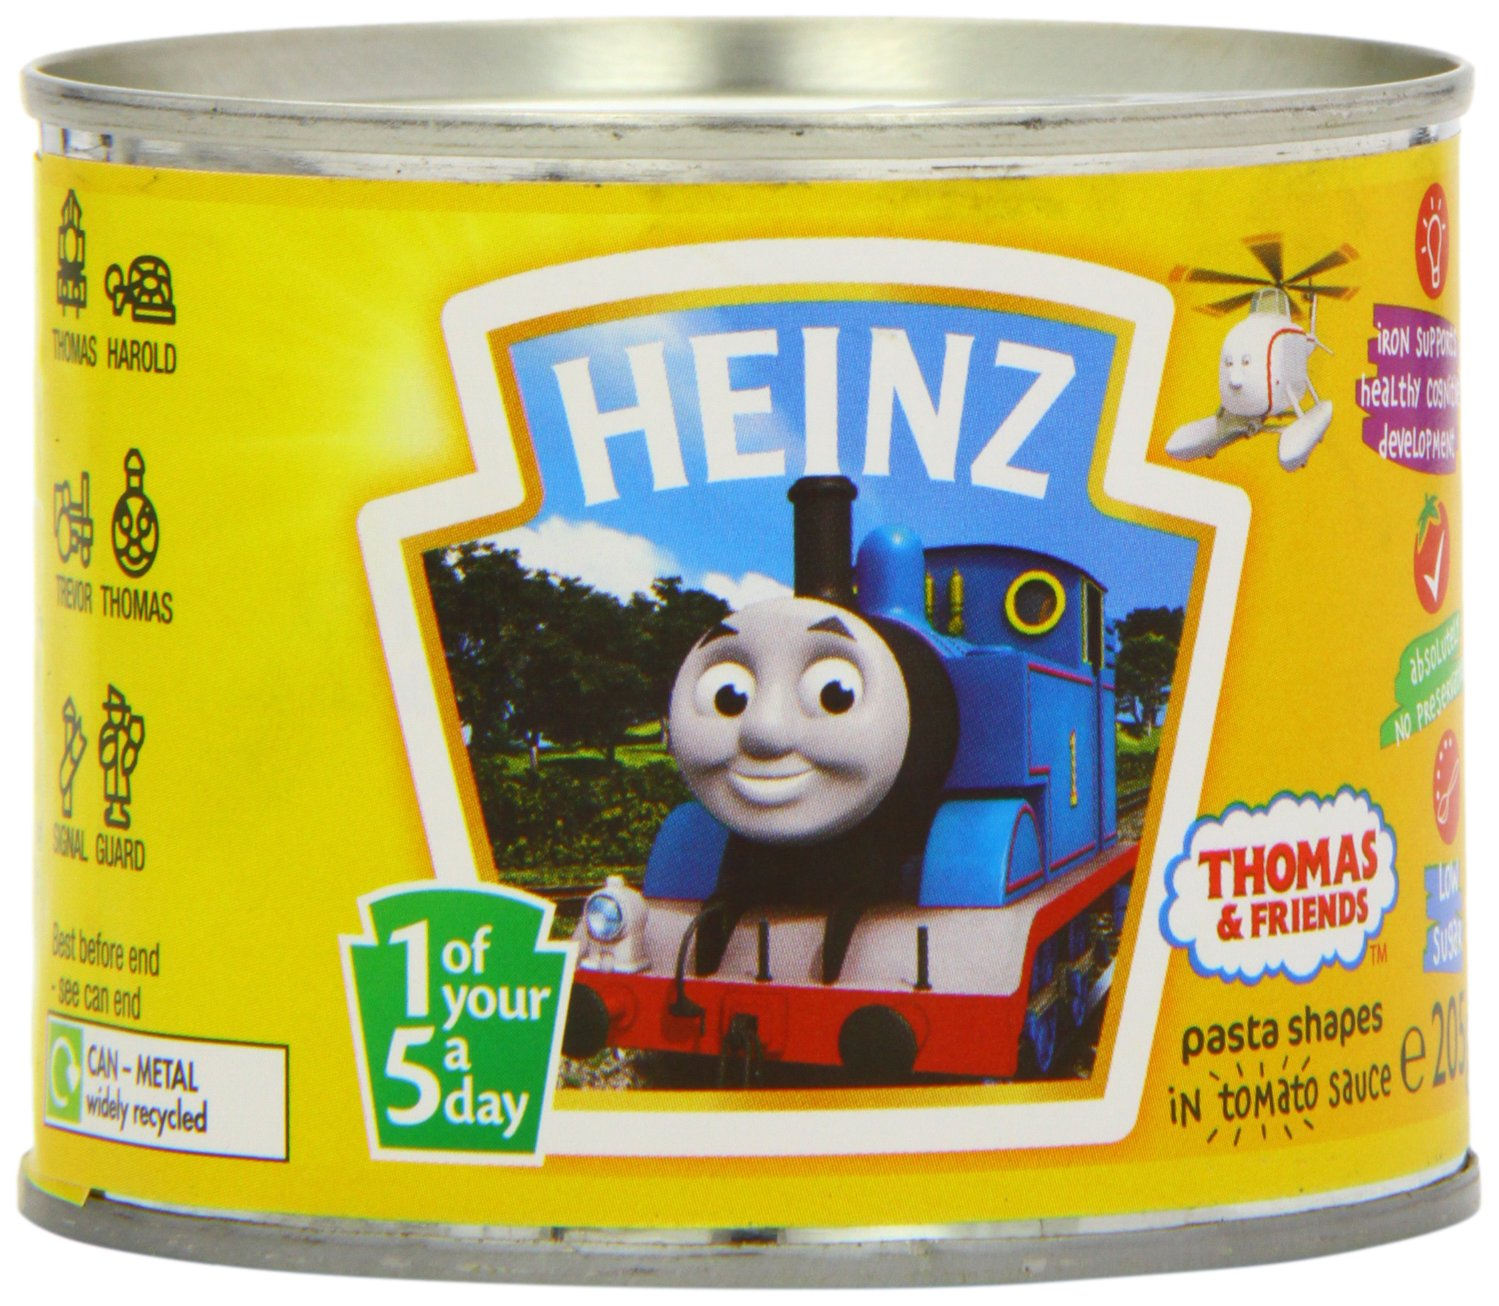 Heinz Thomas and Friends Pasta Shapes in Tomato Sauce, 205 g (Pack of 12)